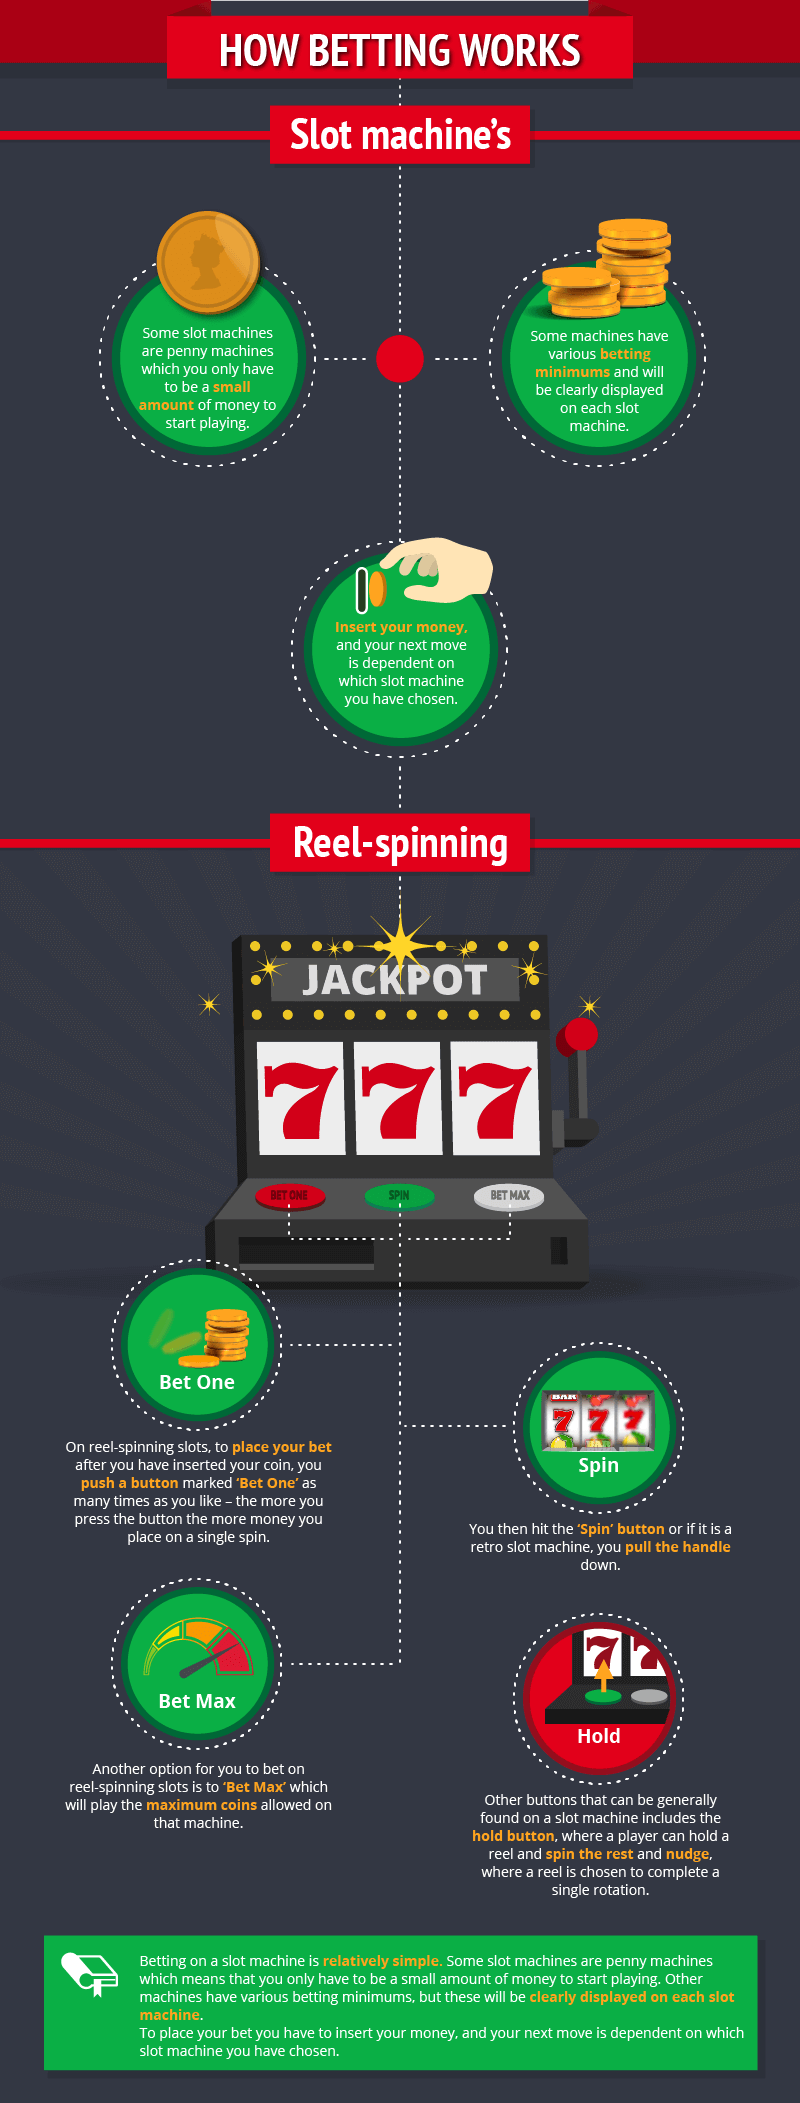 Beginners Guide to slots 1-4_Infographic -how-betting-works